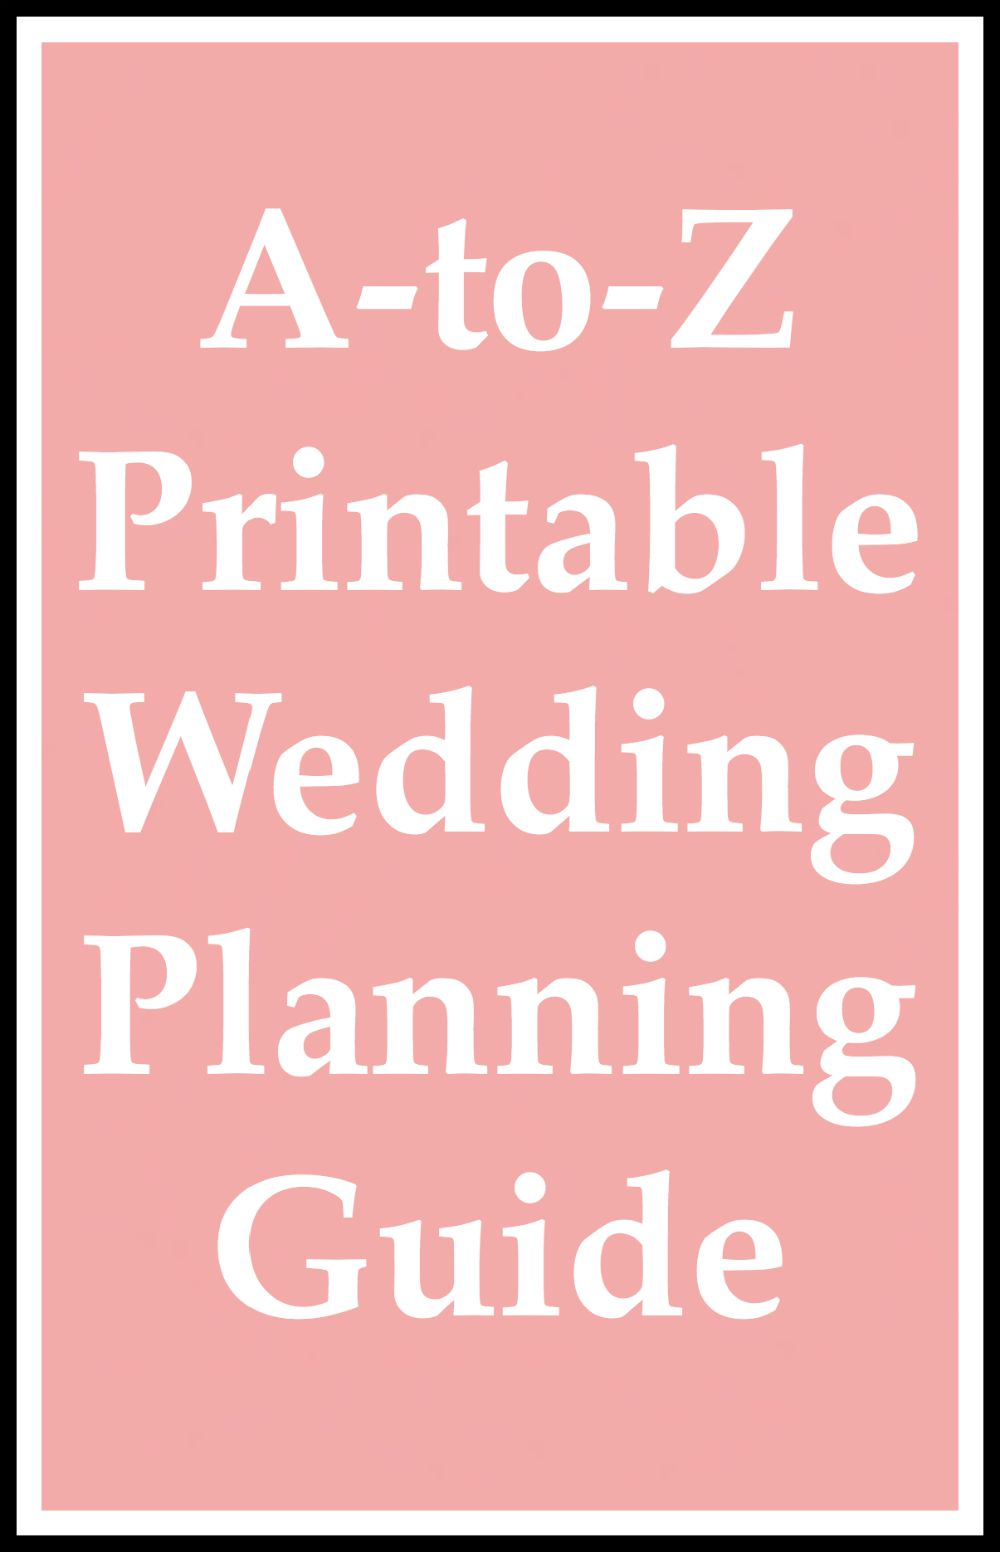 graphic relating to Printable Wedding Planning titled A-toward-Z Printable Marriage ceremony Building Lead